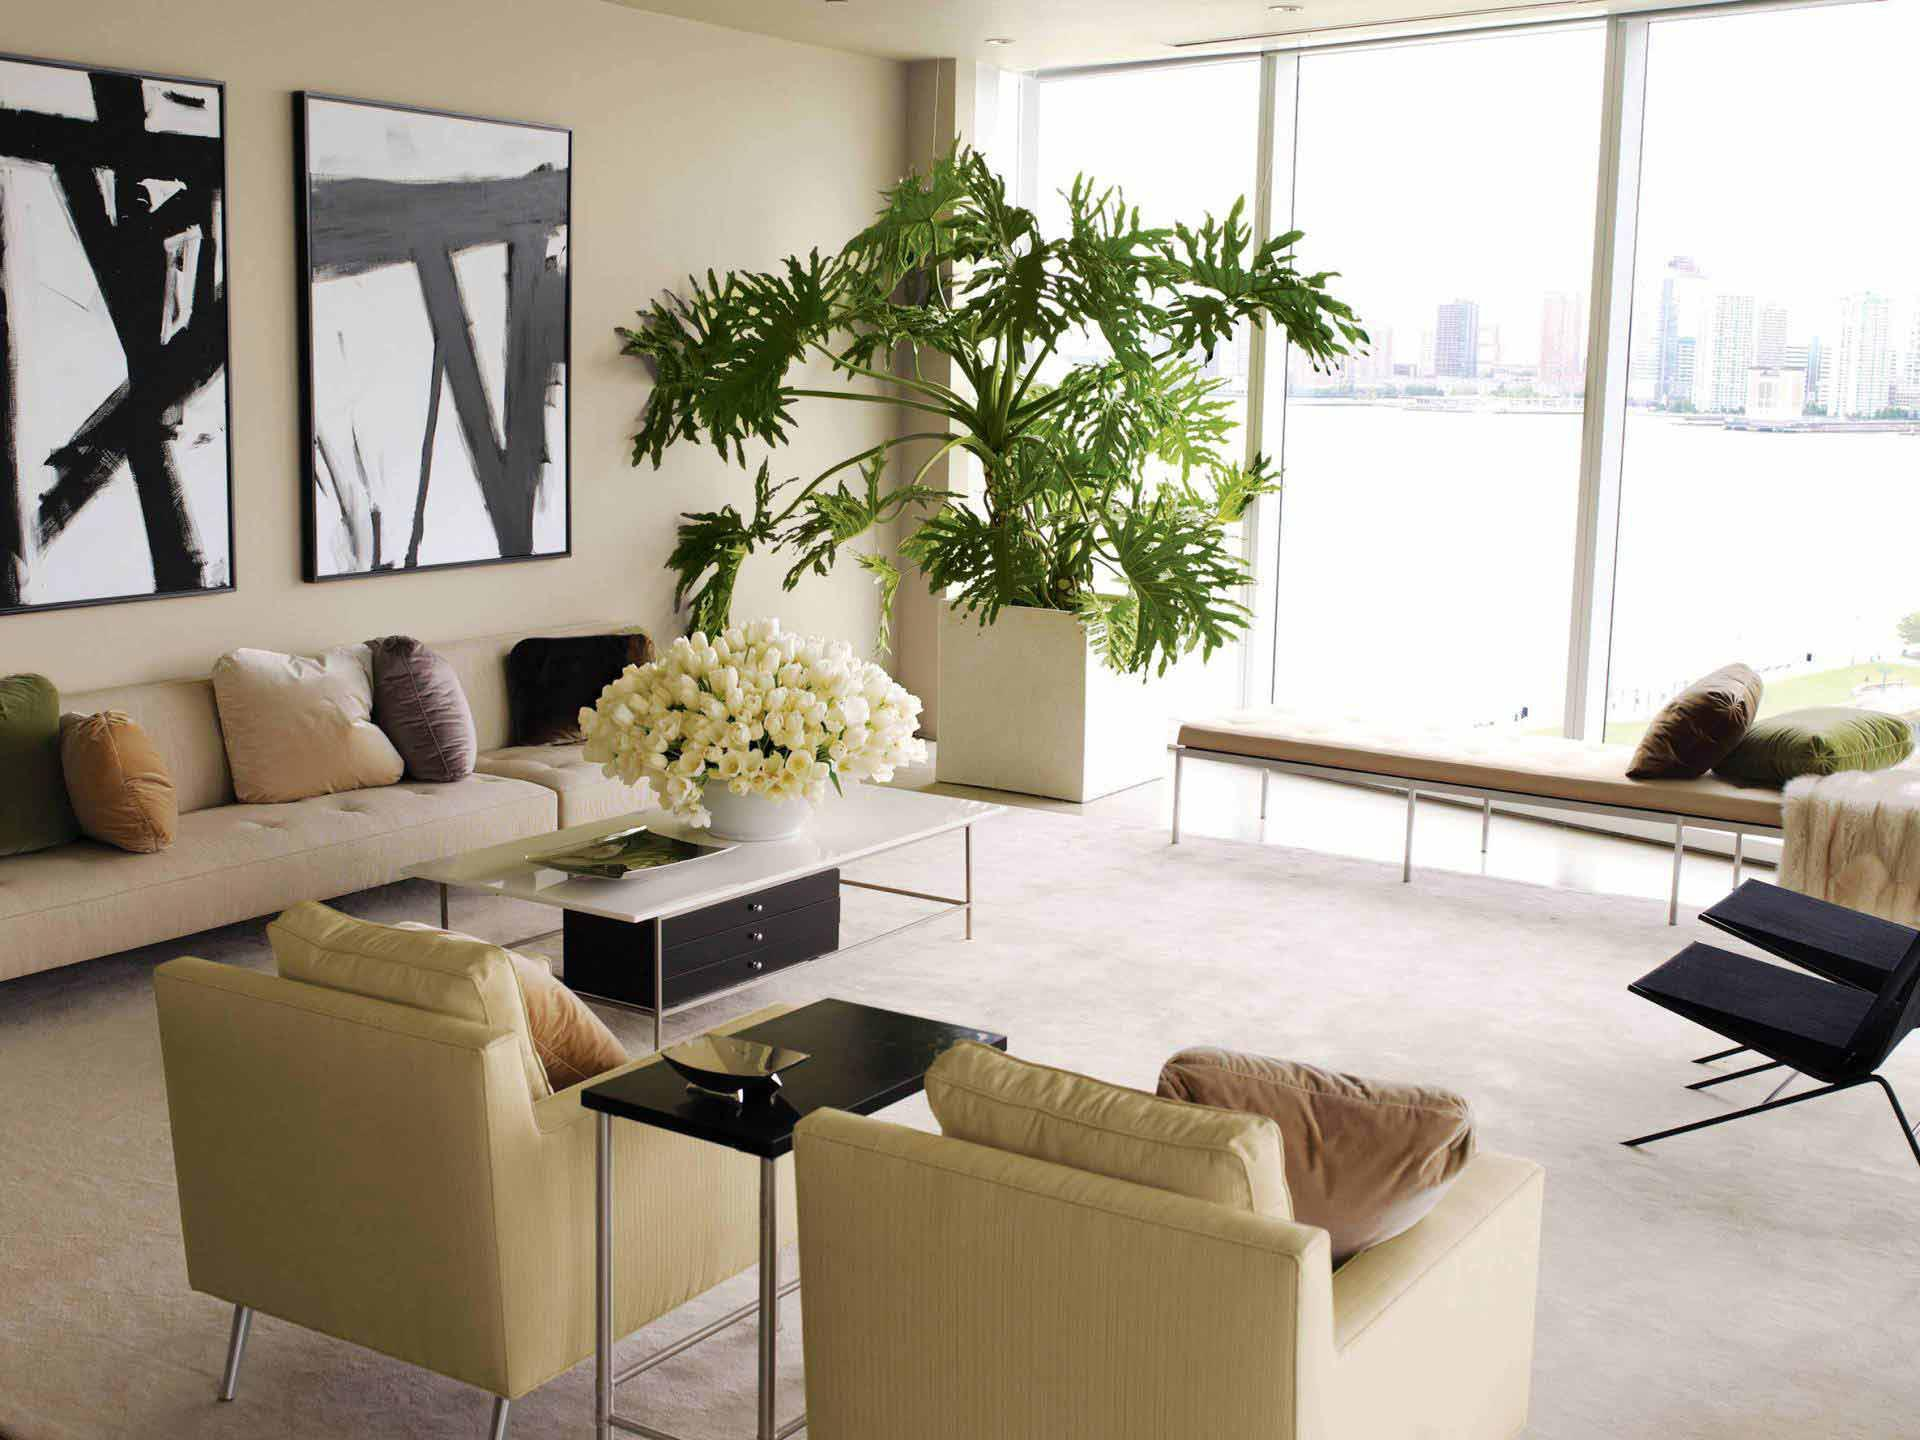 Plants For Living Room Decorating Our Homes With Plants Interior Design Explained